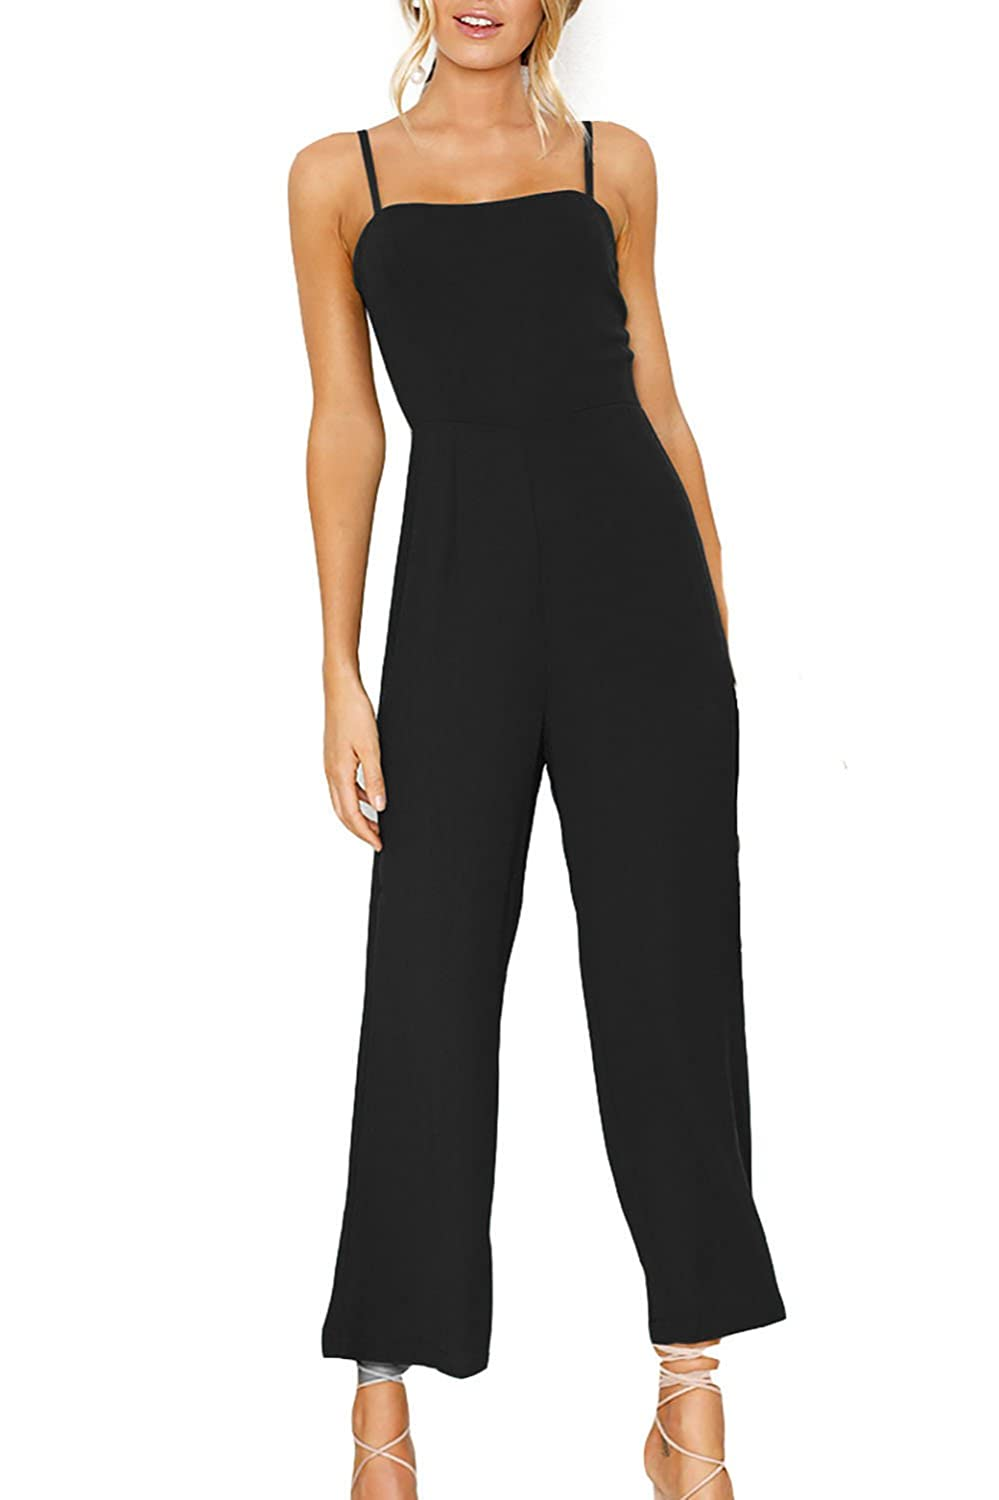 Alelly Women's Solid Color Backless Sleeveless Wide Long Pants Jumpsuit Rompers